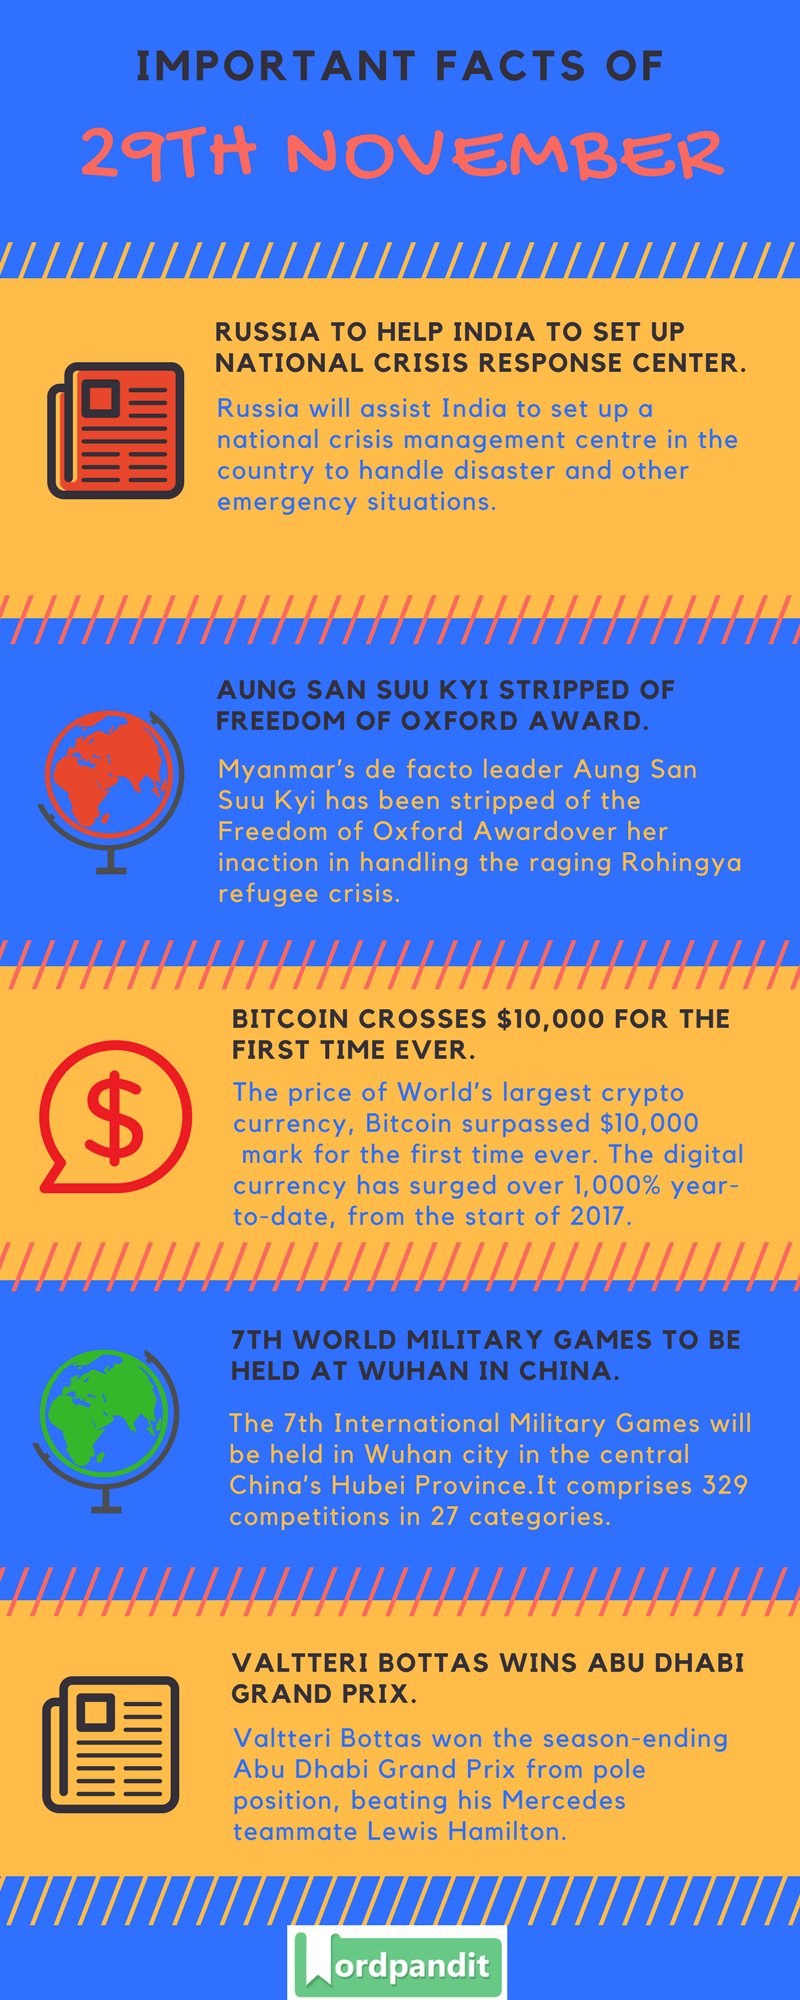 Daily-Current-Affairs-29-november-2017-Current-Affairs-Quiz-november-29-2017-Current-Affairs-Infographic